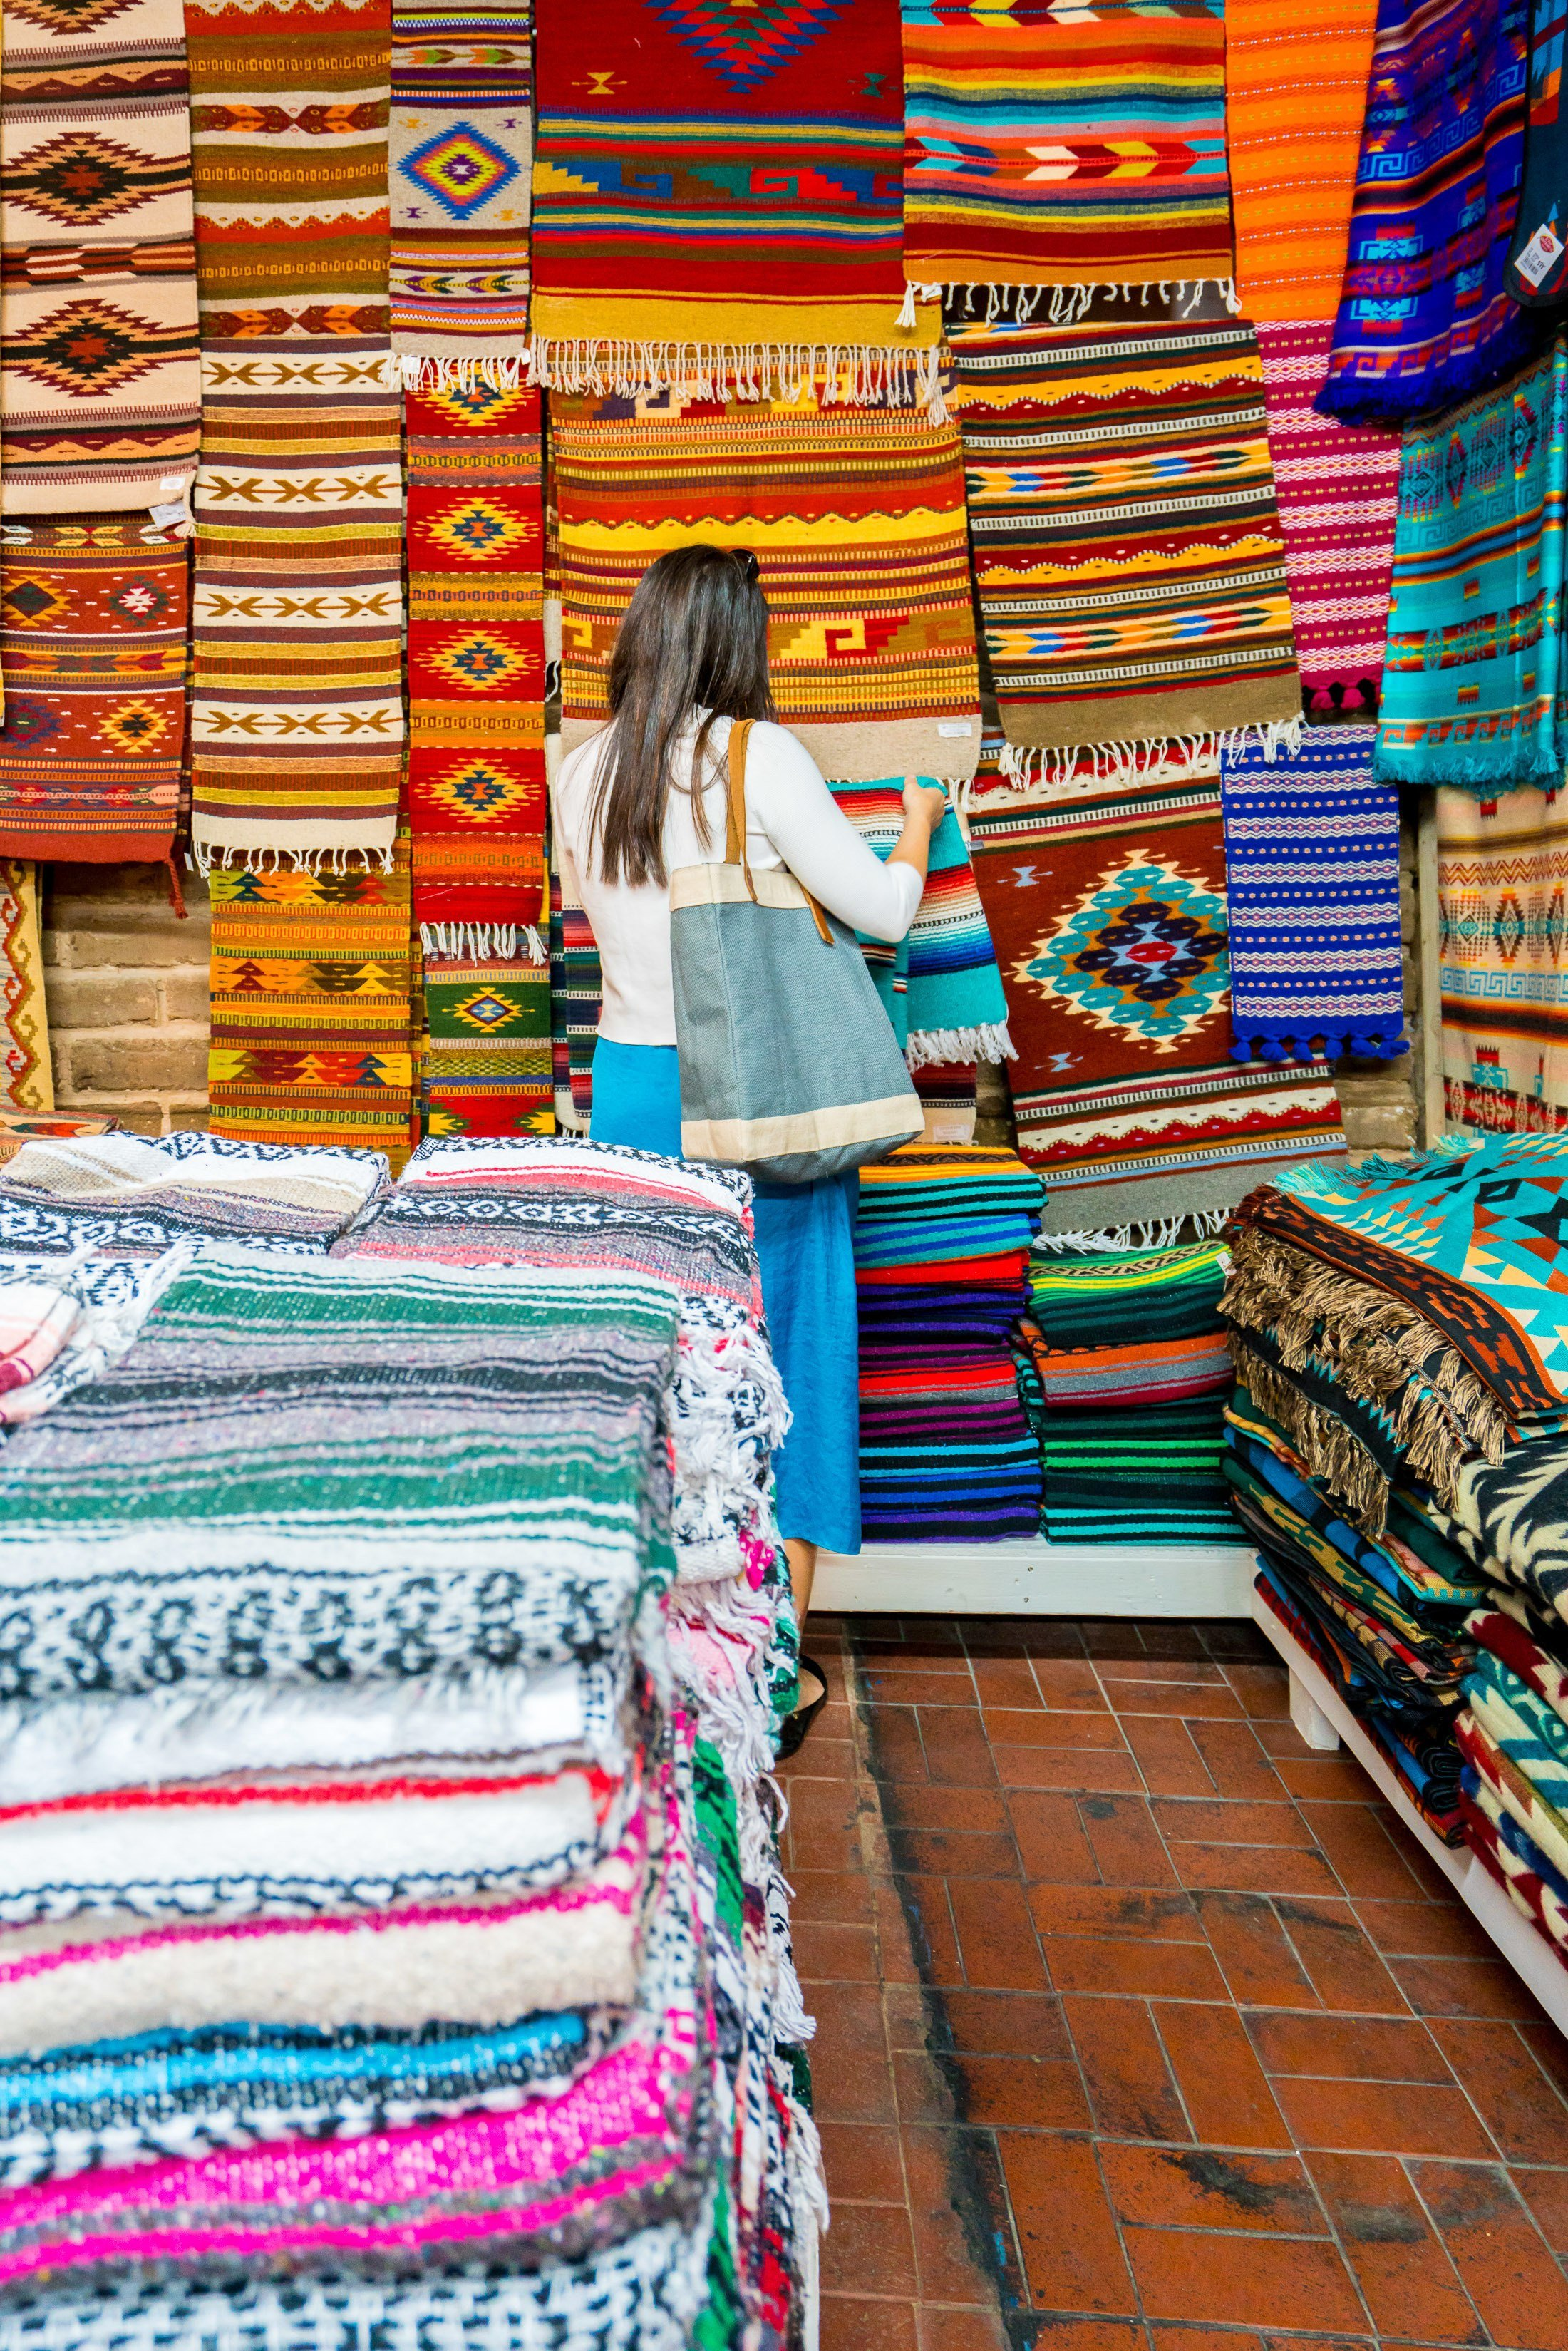 Shopping for blankets in Old Town Albuquerque.